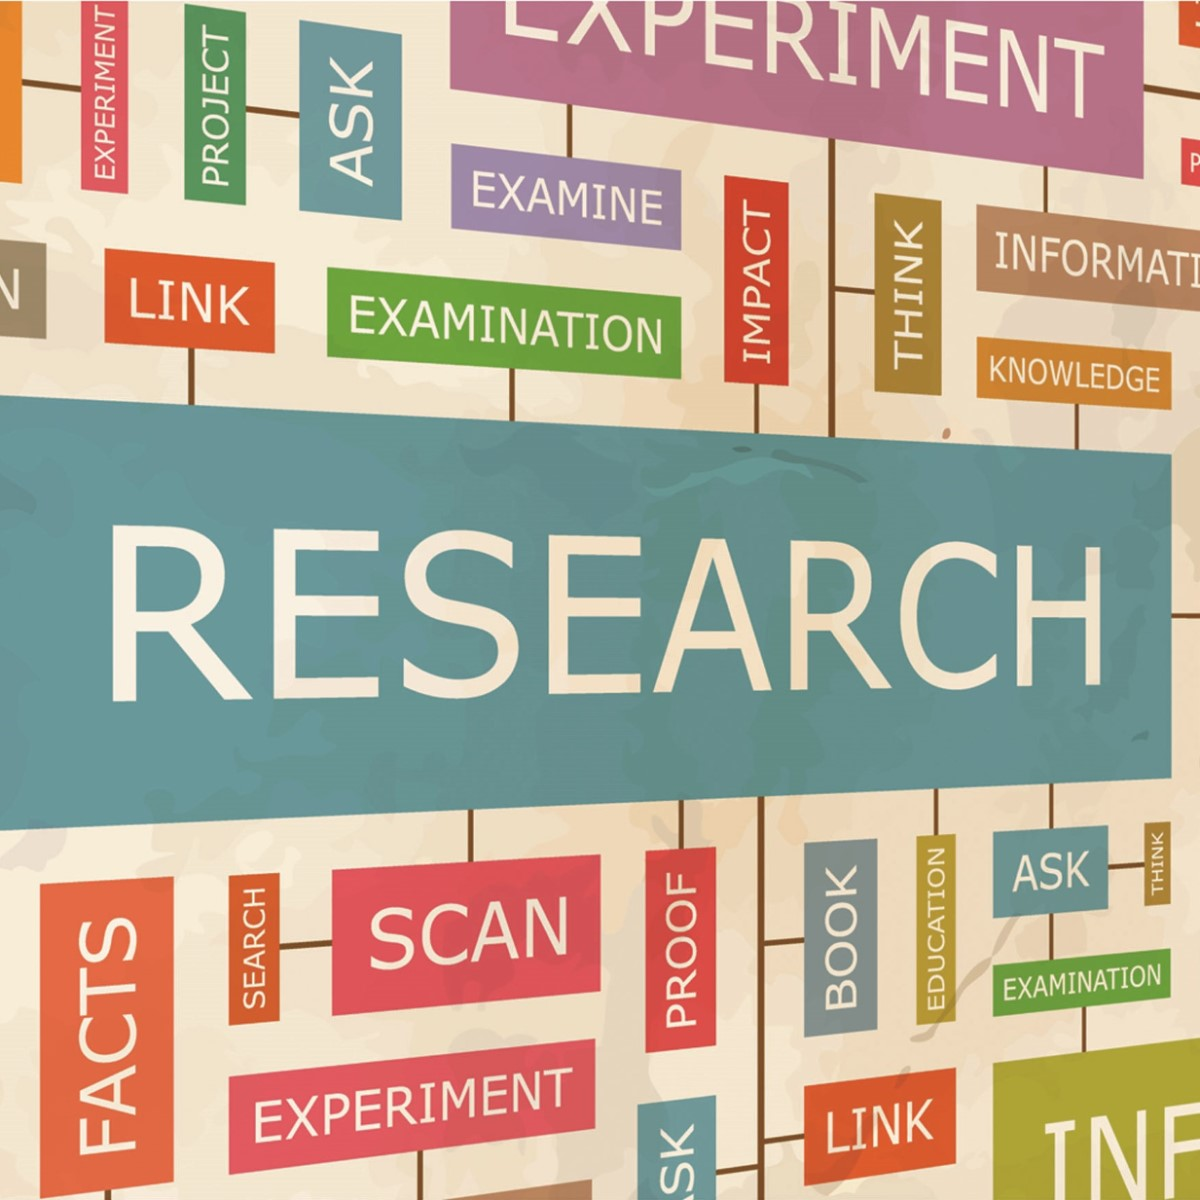 Academic Research from Indian Universities | Kaggle